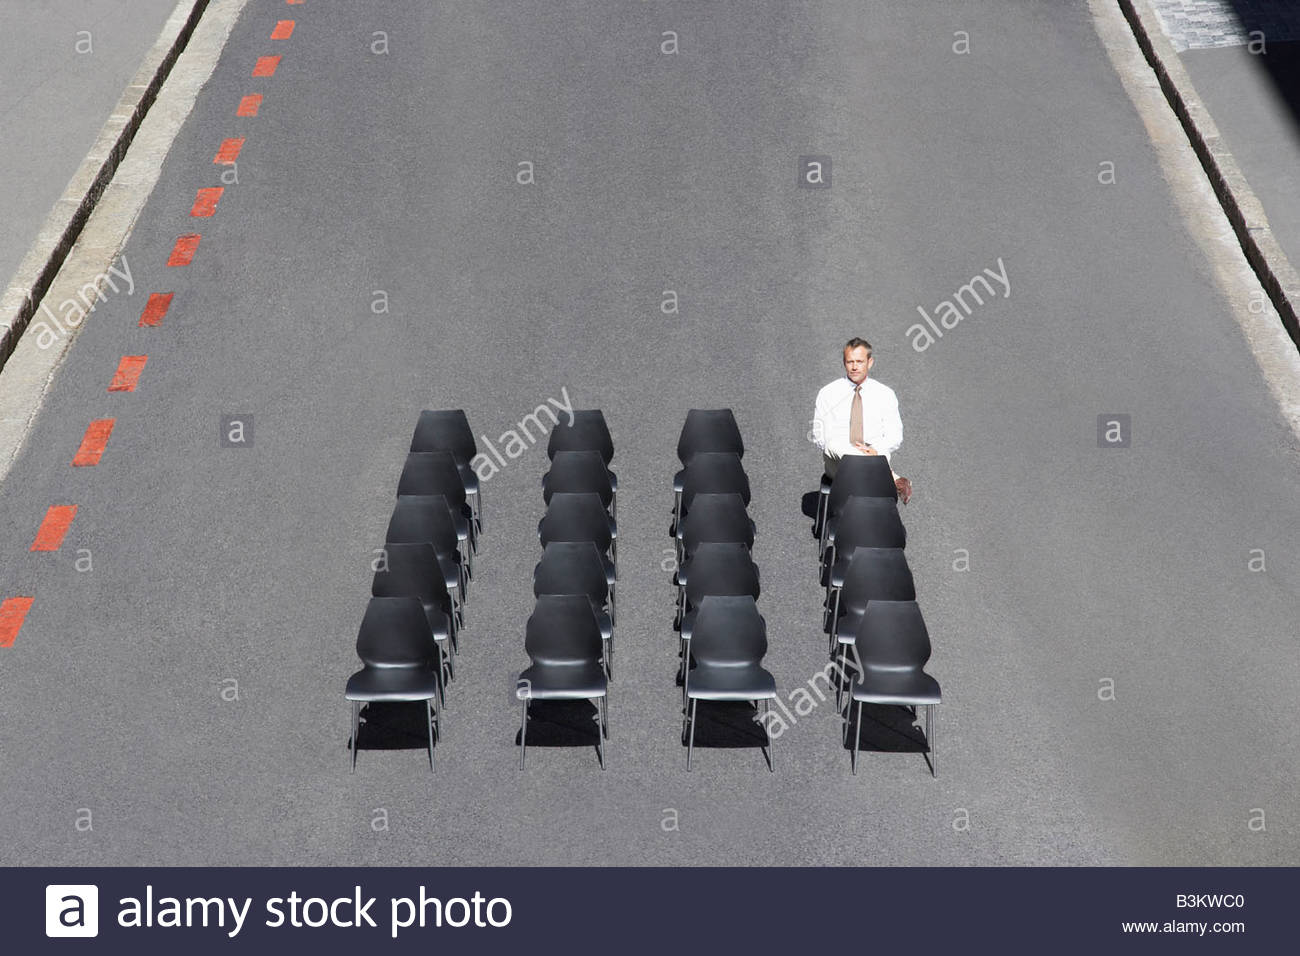 Businessman sitting in office chairs in roadway - Stock Image